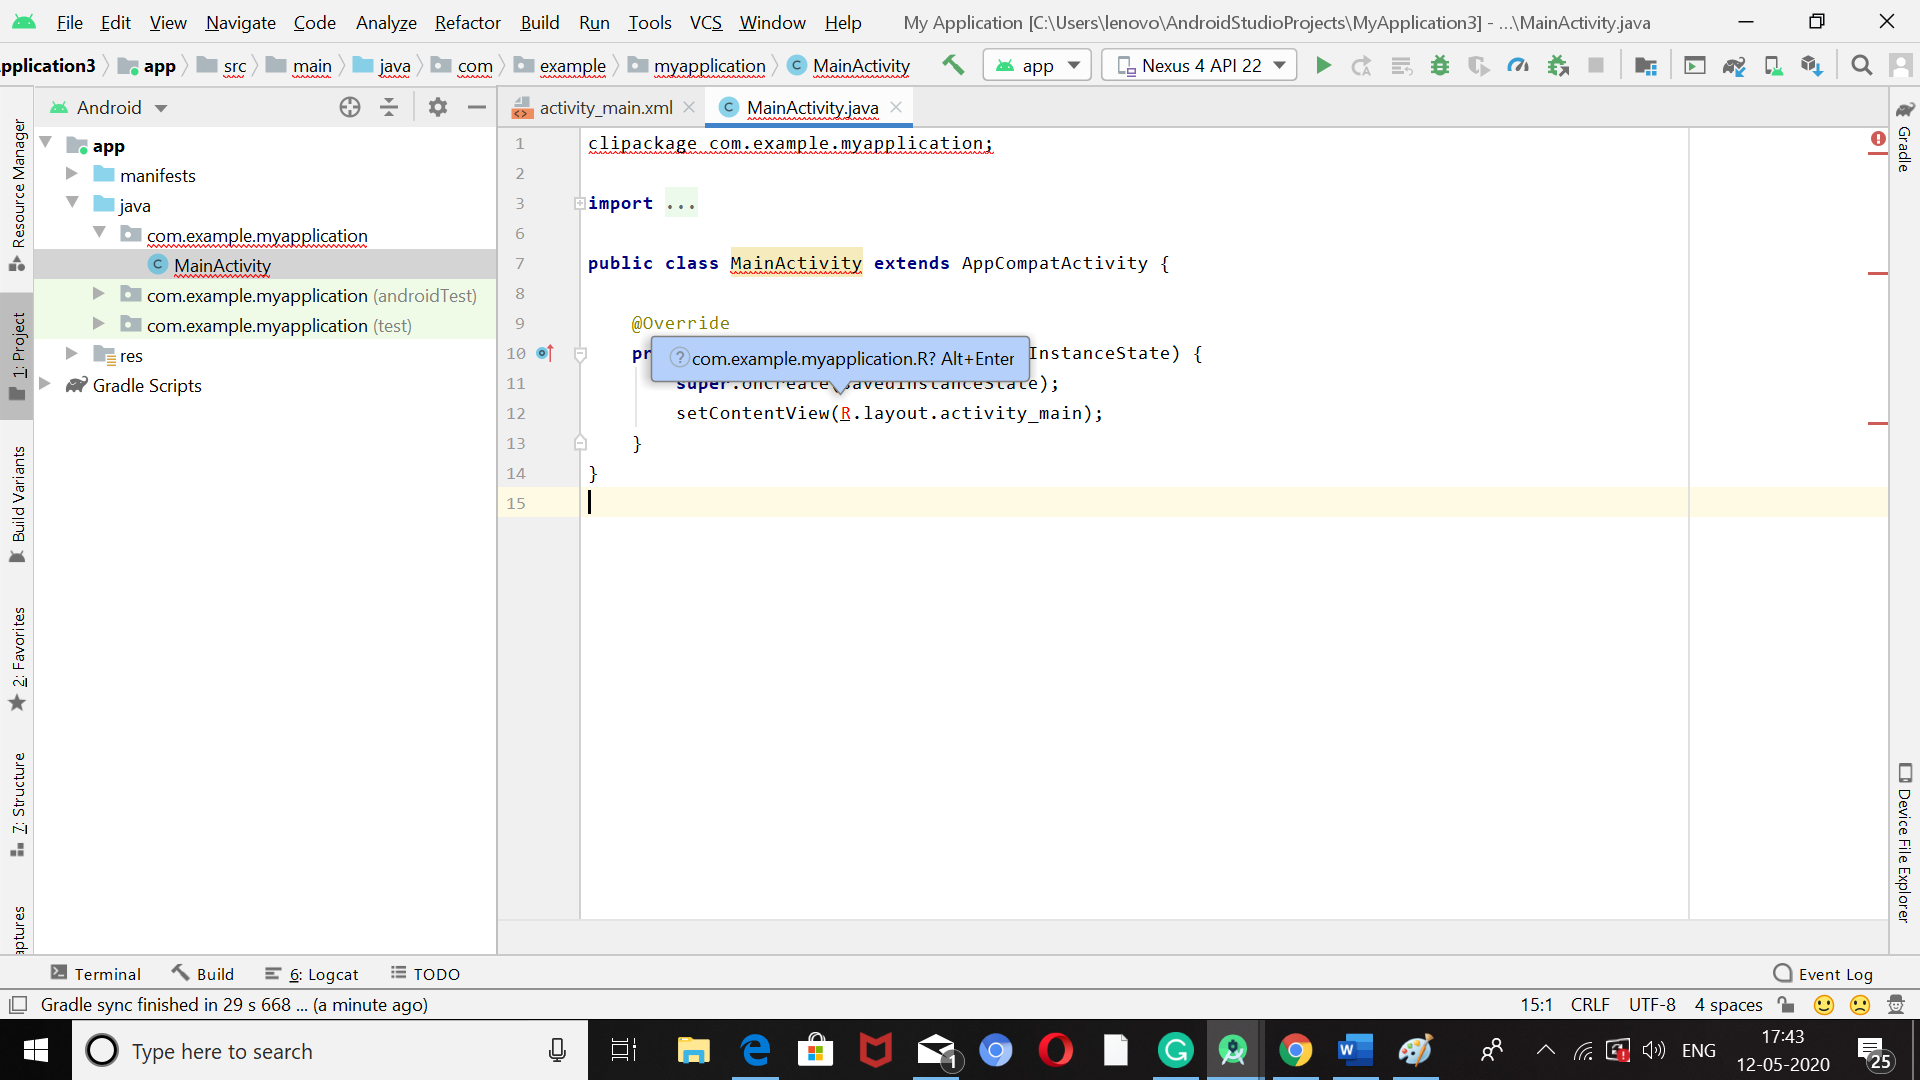 Create project in android studio